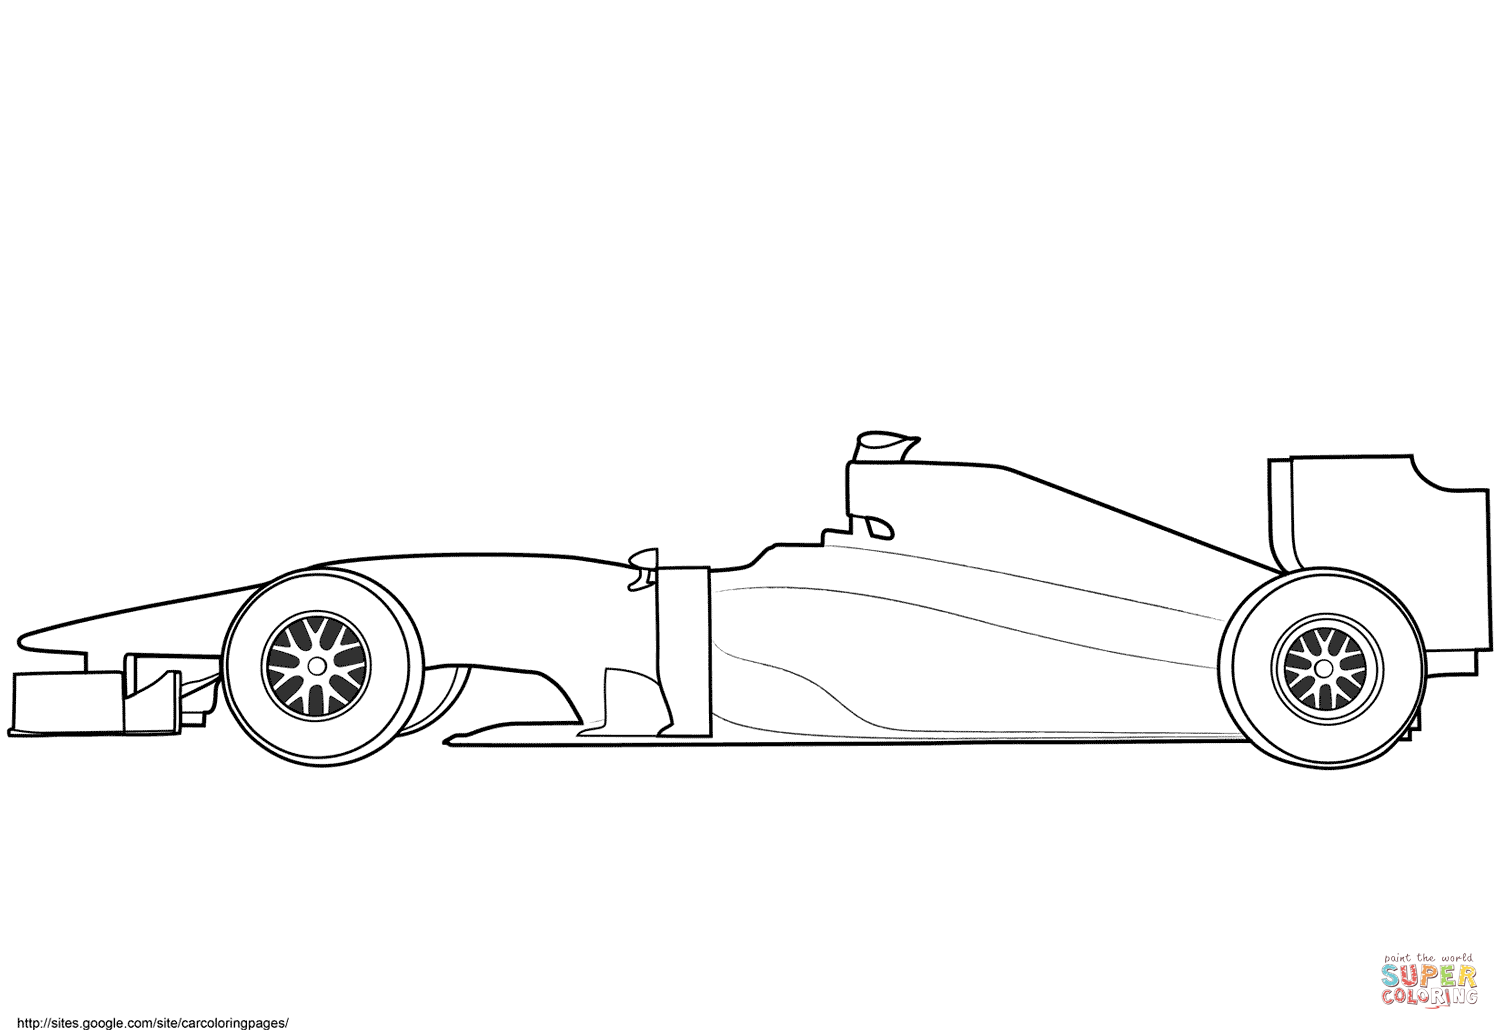 Blank Formula 1 Race Car Coloring Page Free Printable Coloring Pages